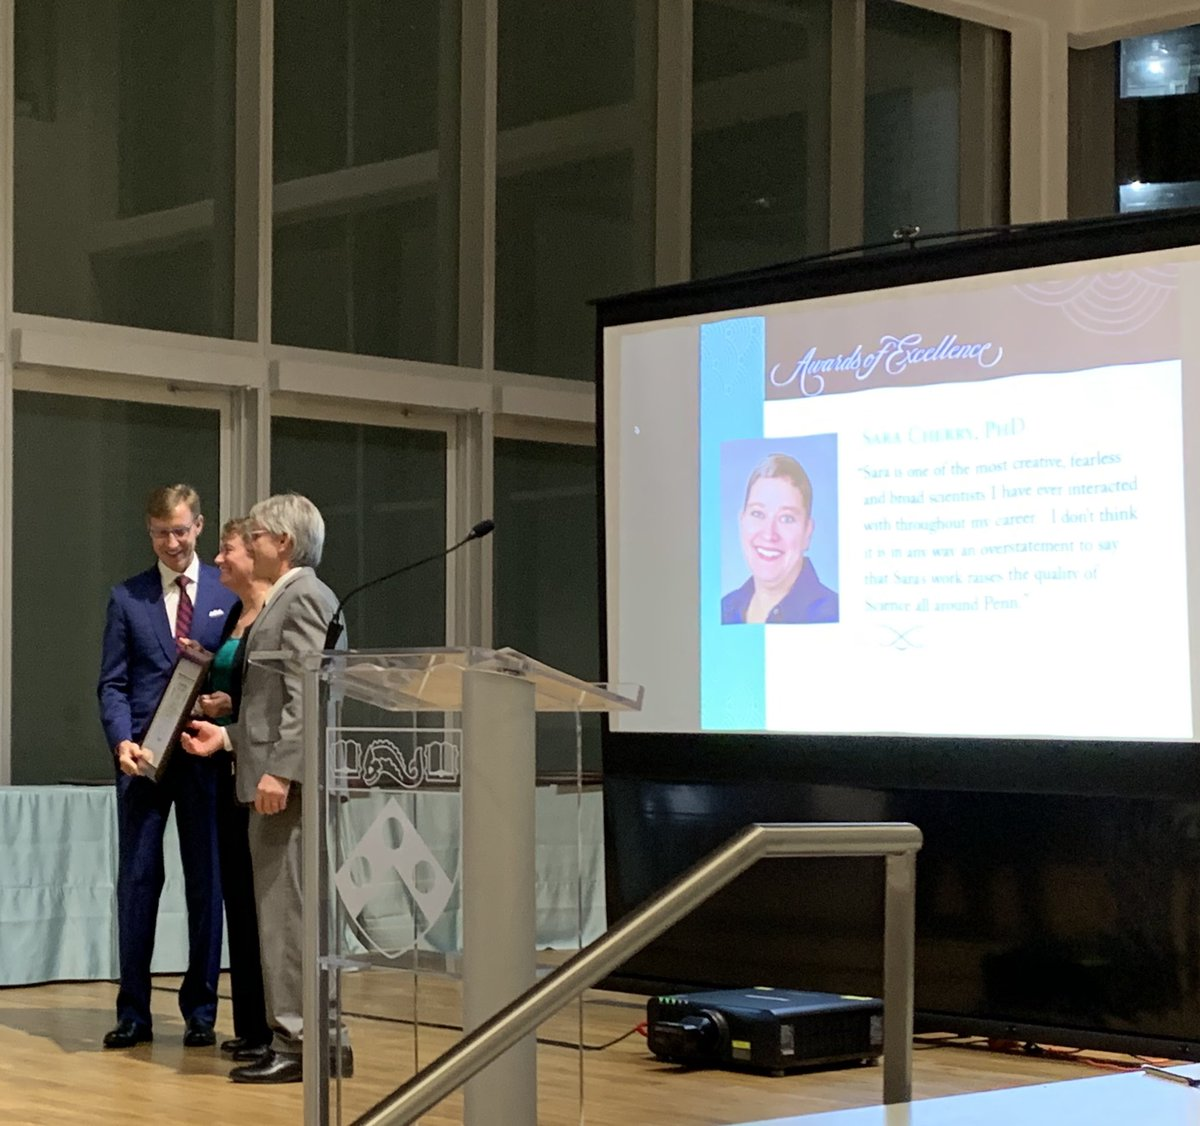 Congrats to our board member Sara Cherry on receiving the Stanley N. Cohen Biomedical Research Award!